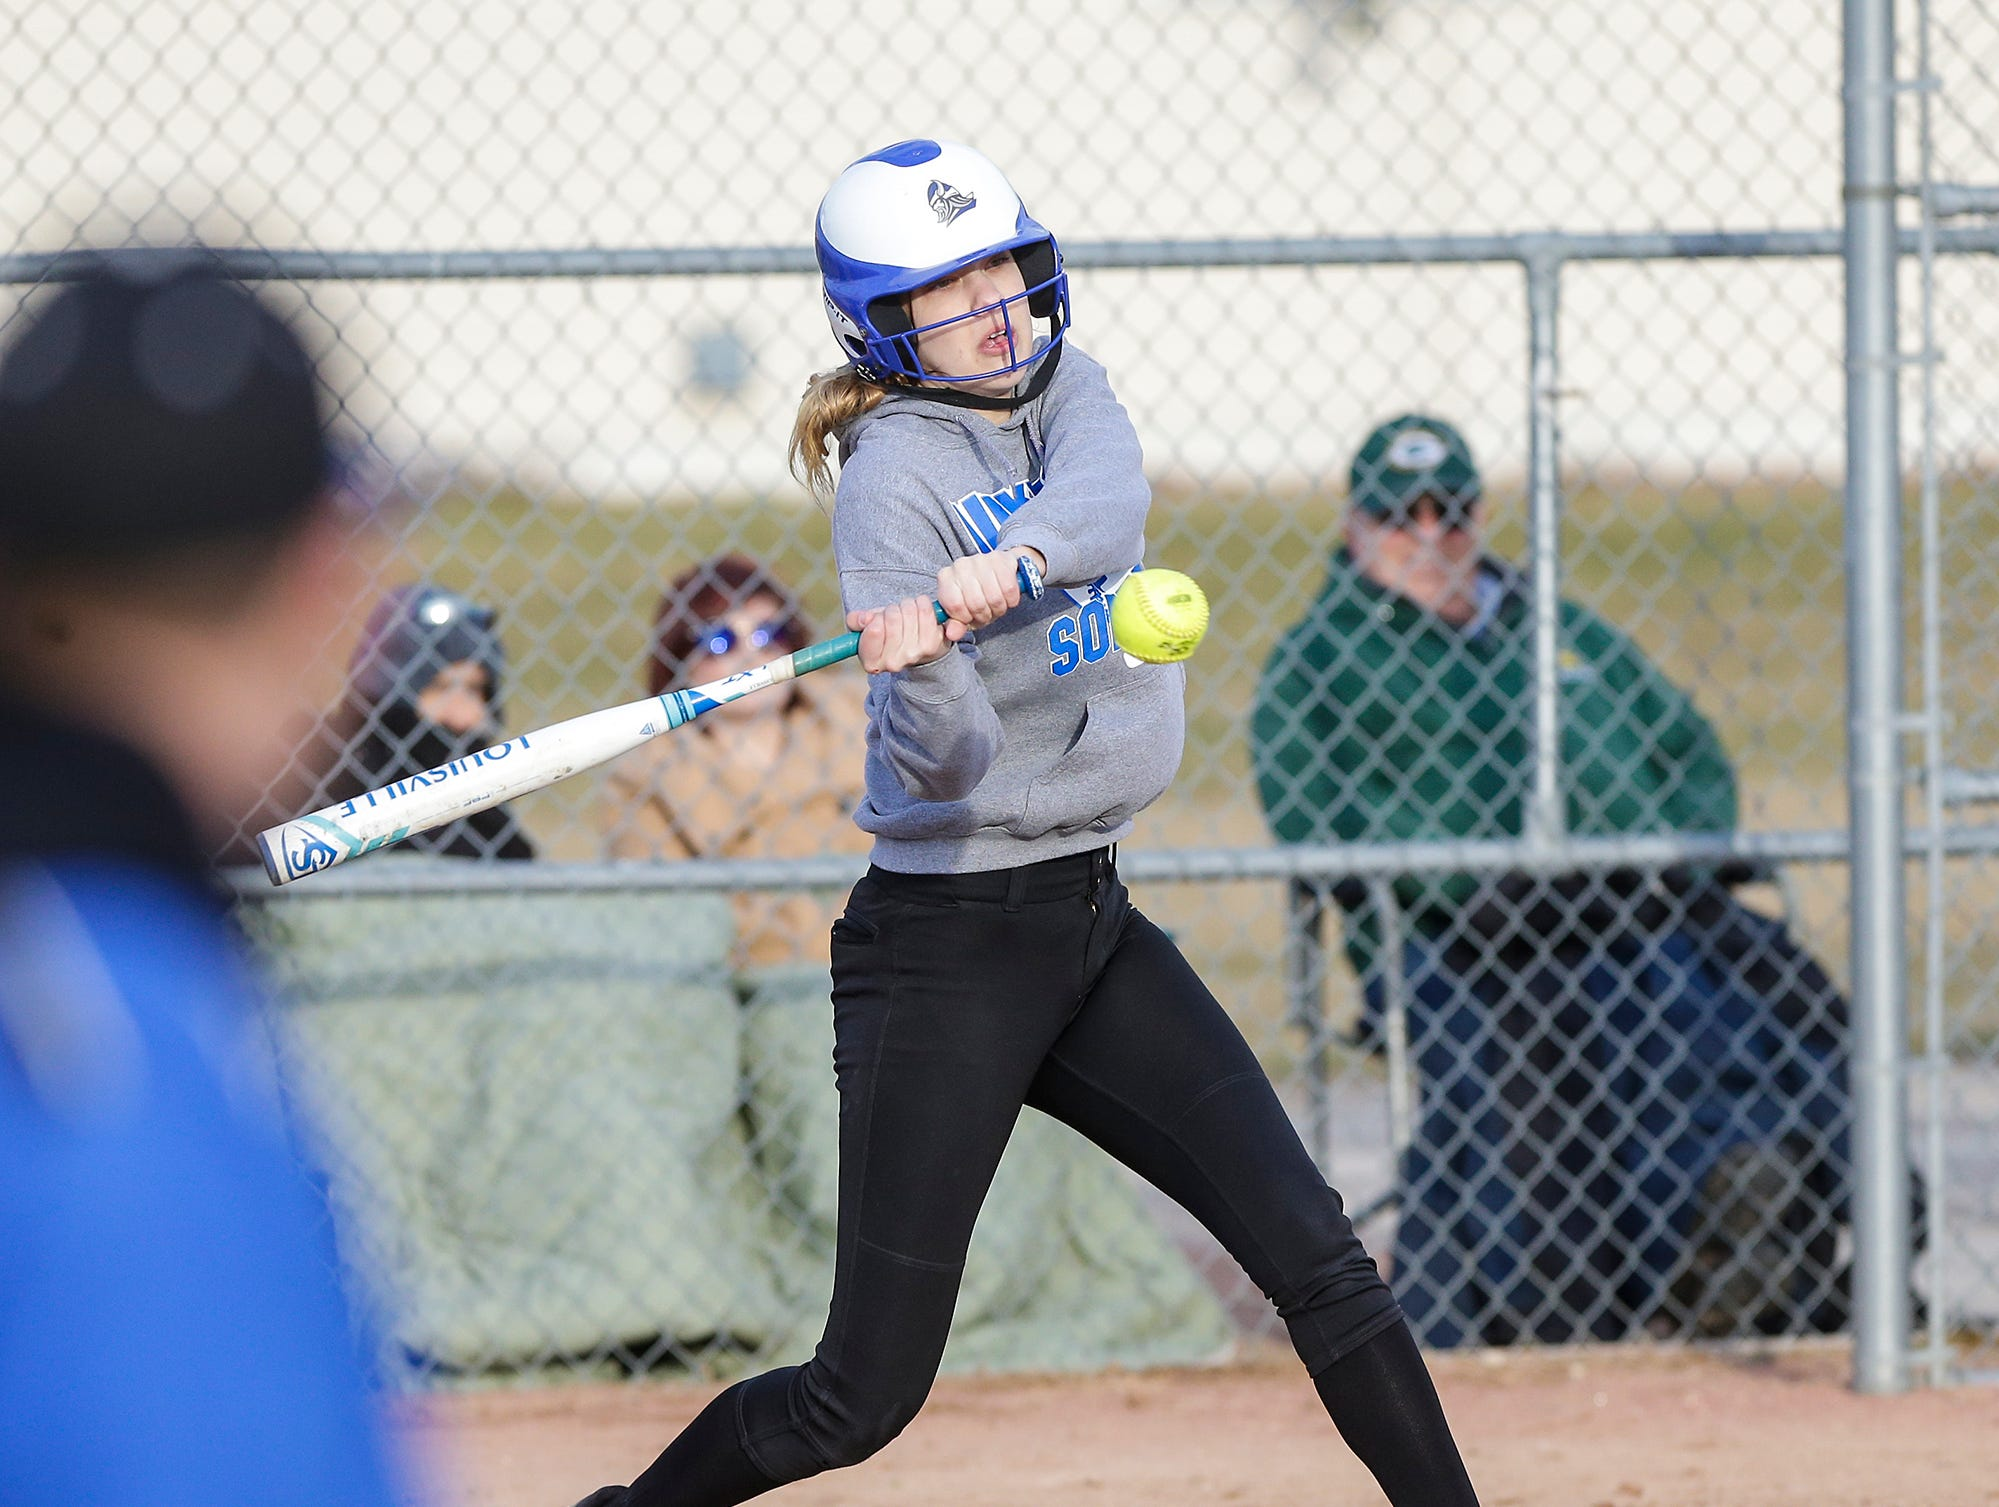 Winnebago Lutheran Academy softball's Kaylee Frey hits a three run double against Laconia High School April 9, 2019 during their game in Fond du Lac, Wis. Laconia won the game 25-9. Doug Raflik/USA TODAY NETWORK-Wisconsin